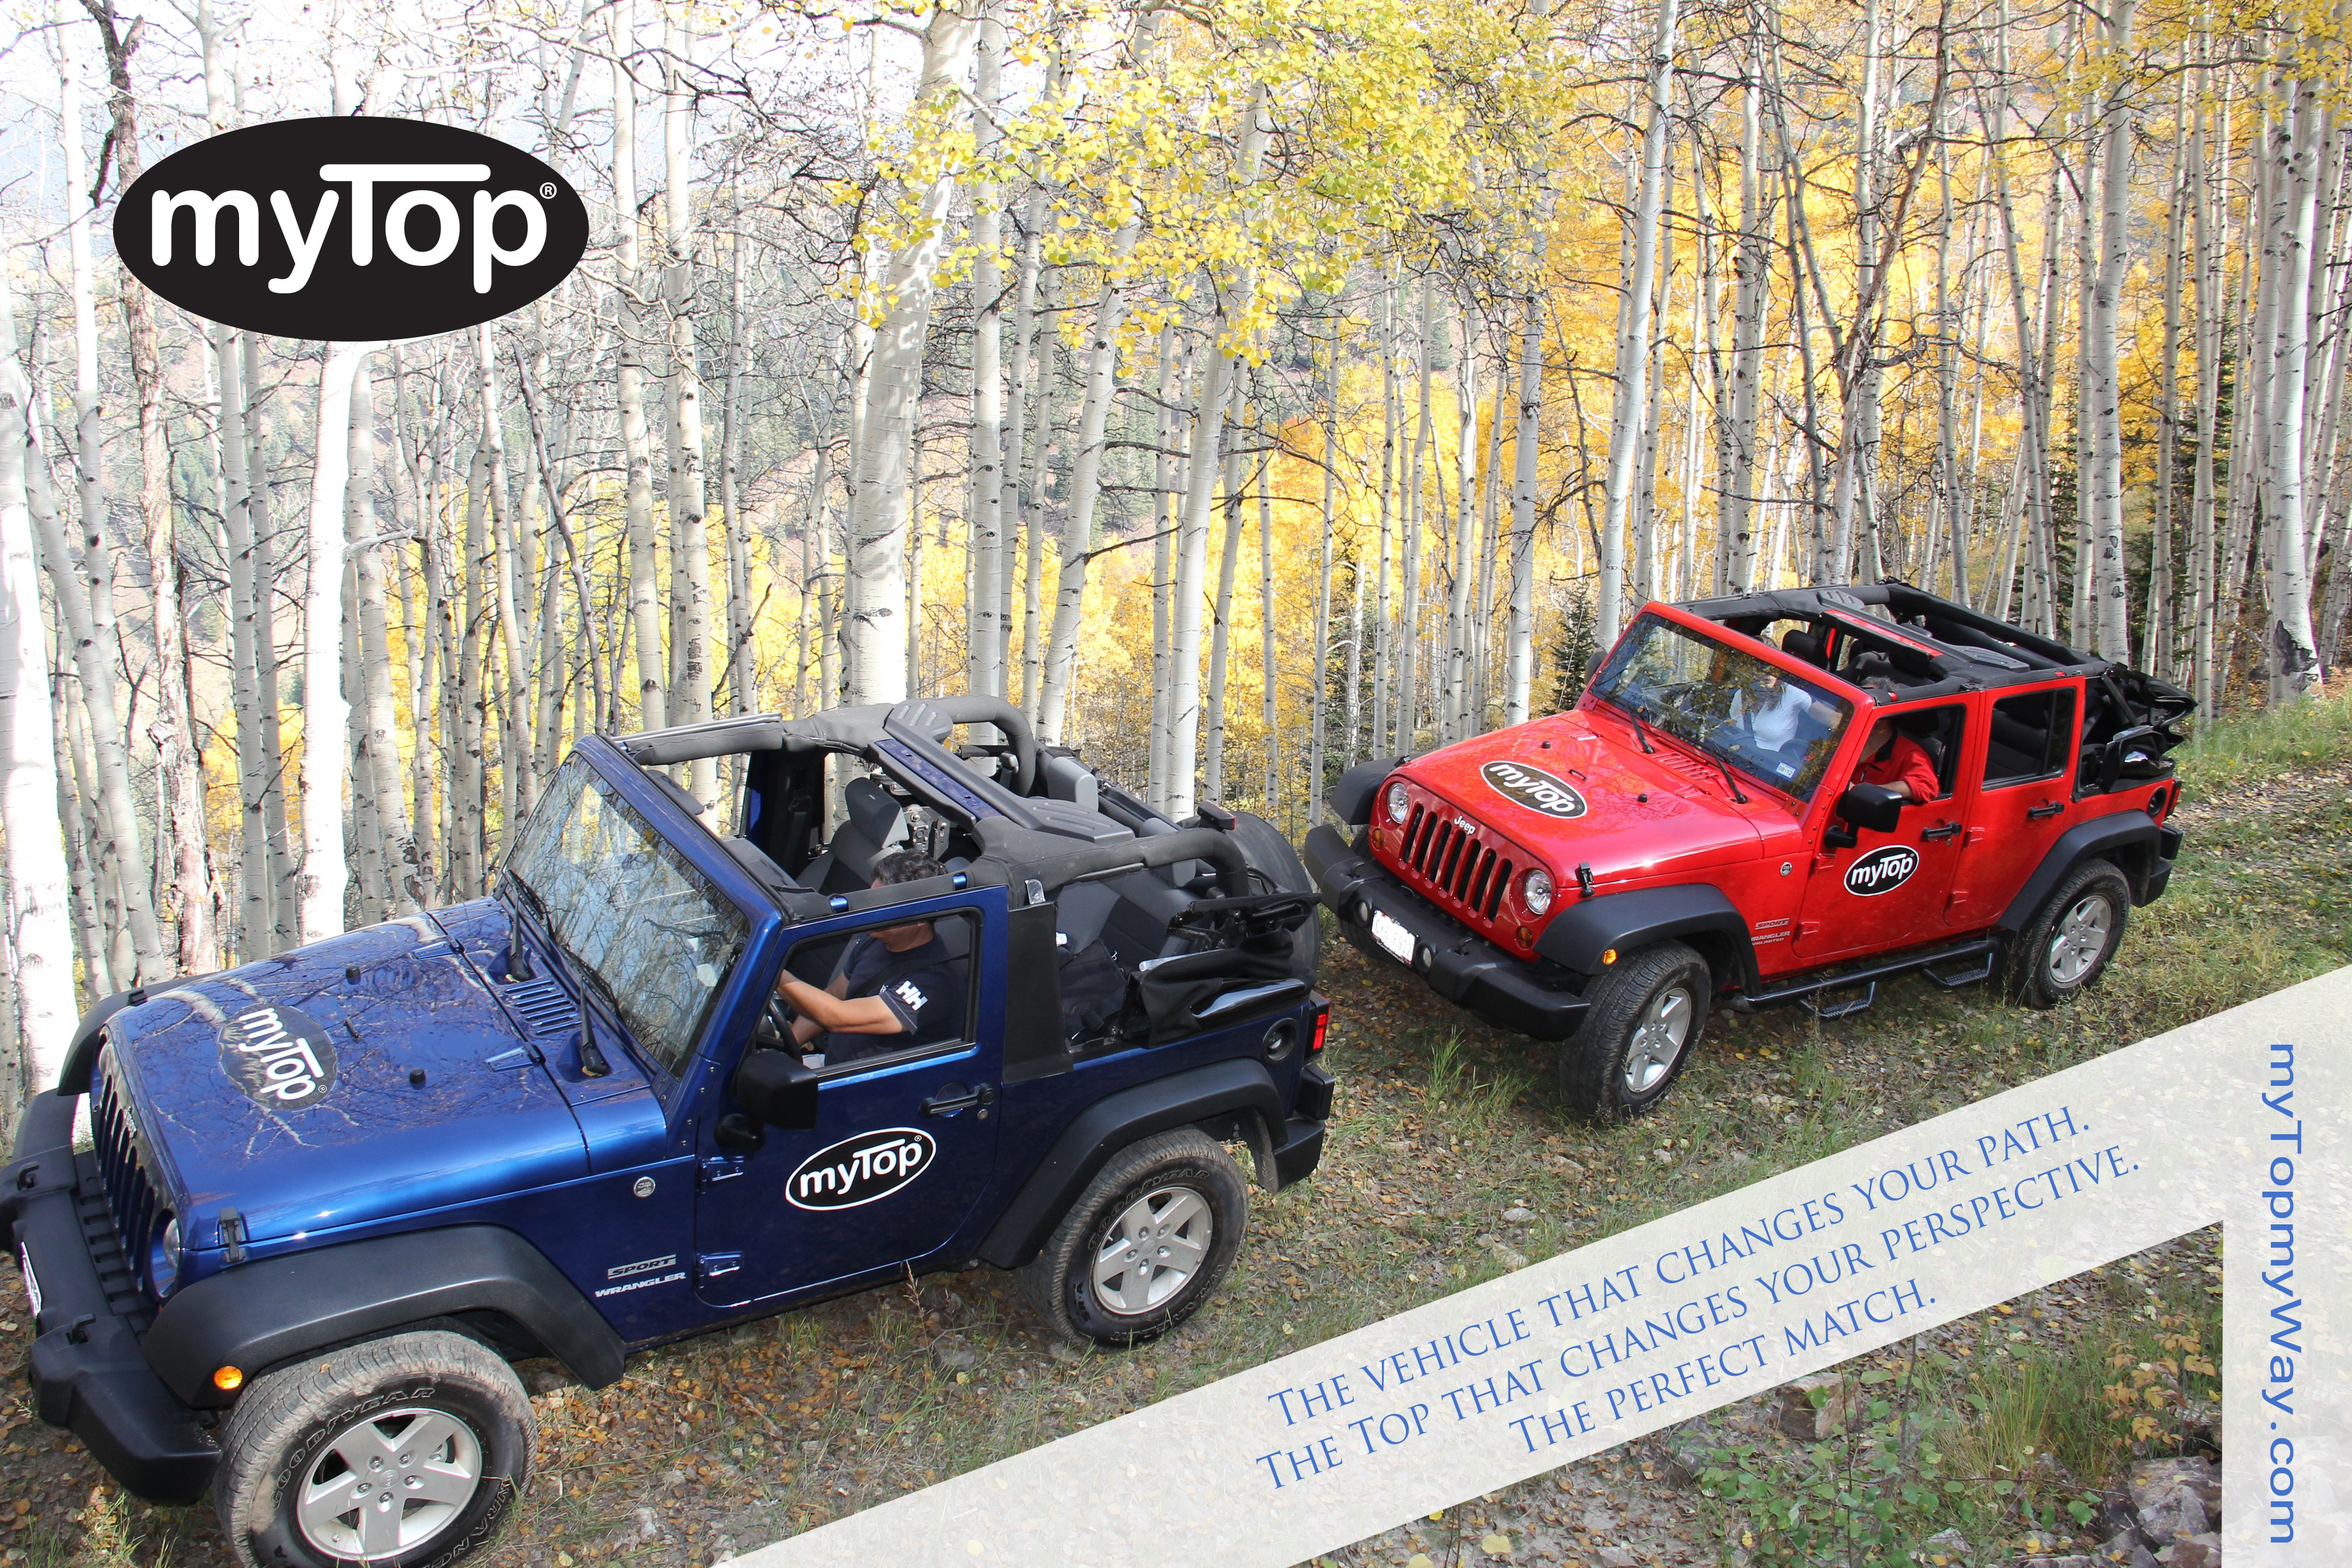 Jeep Accessories In Buffalo Ny Casullos Automotive Services Inc Parts Soft Tops From The